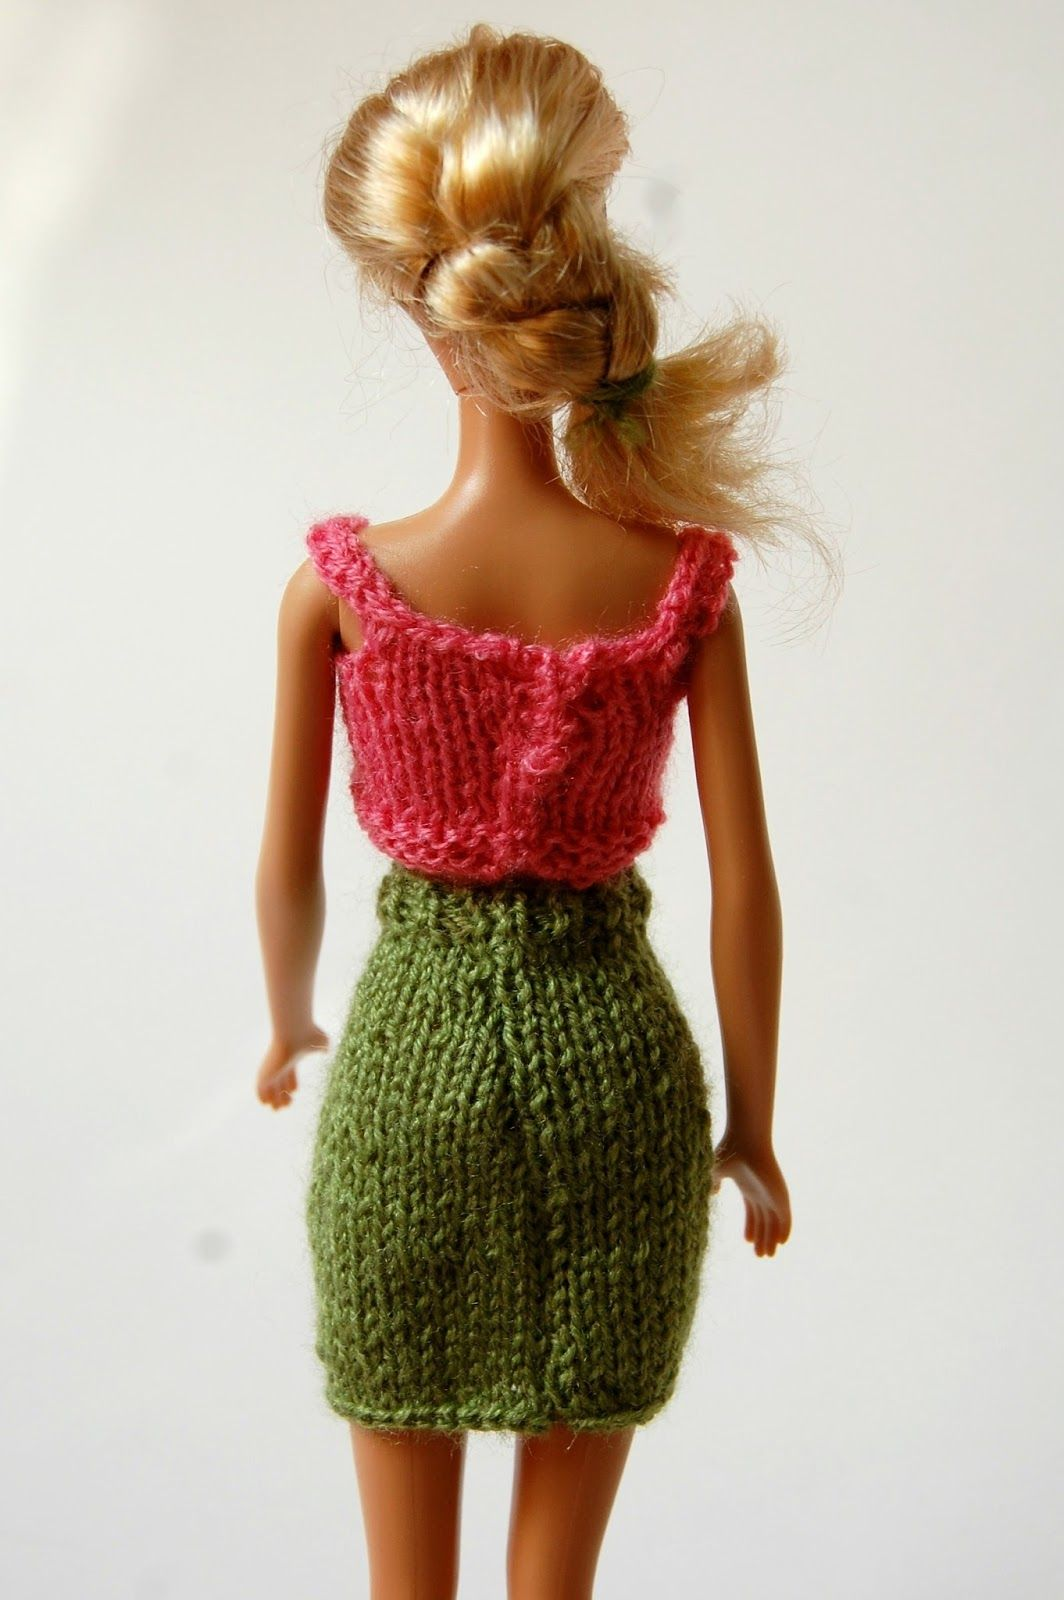 A free knitting pattern for a stylish pencil skirt for your barbie a free knitting pattern for a stylish pencil skirt for your barbie bankloansurffo Images